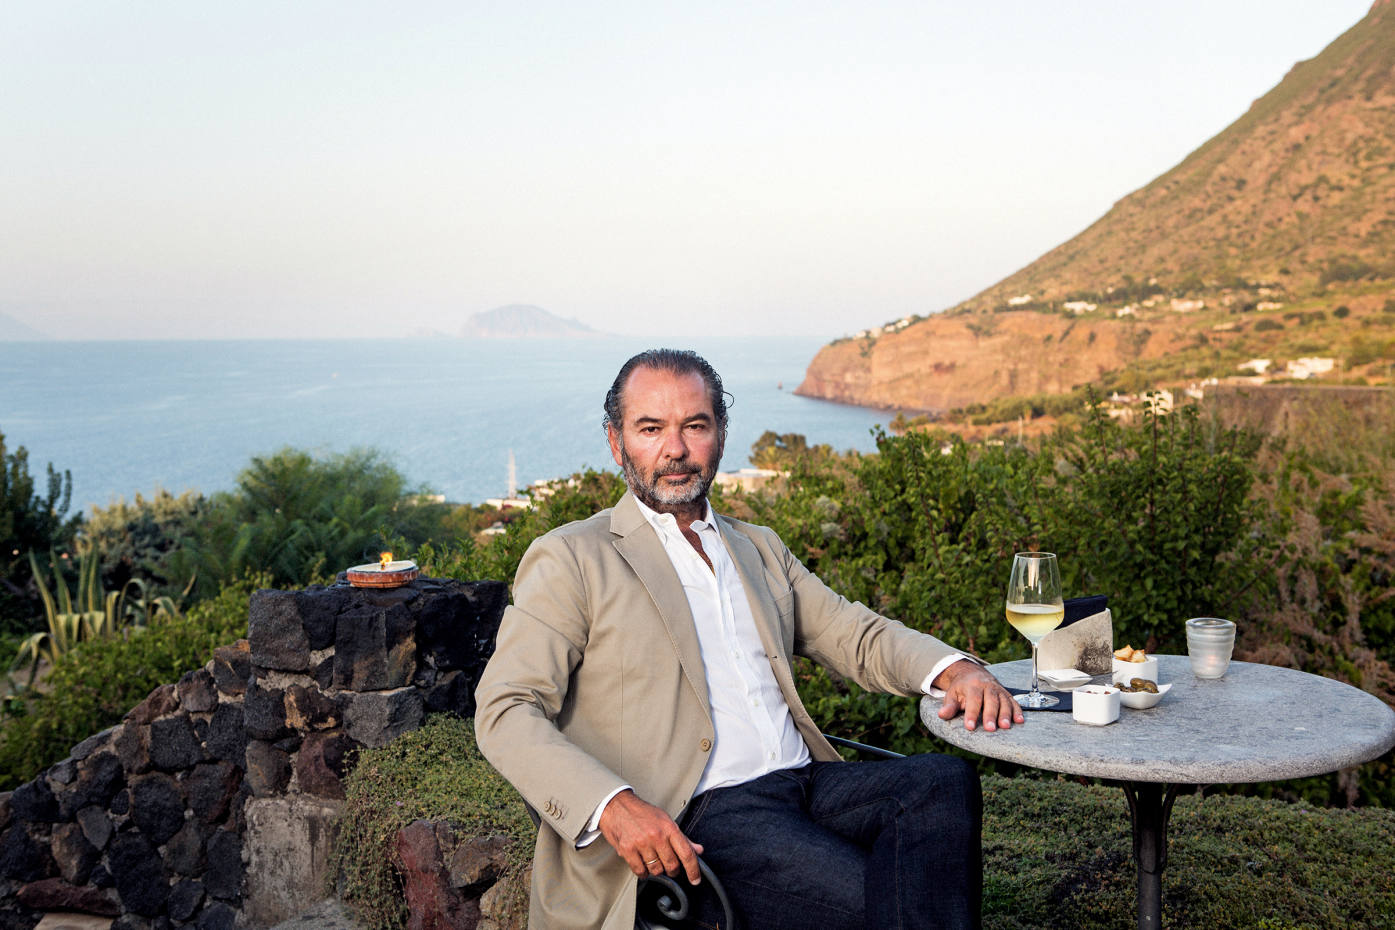 Remo Ruffini on the Hotel Signum terrace on the island of Salina